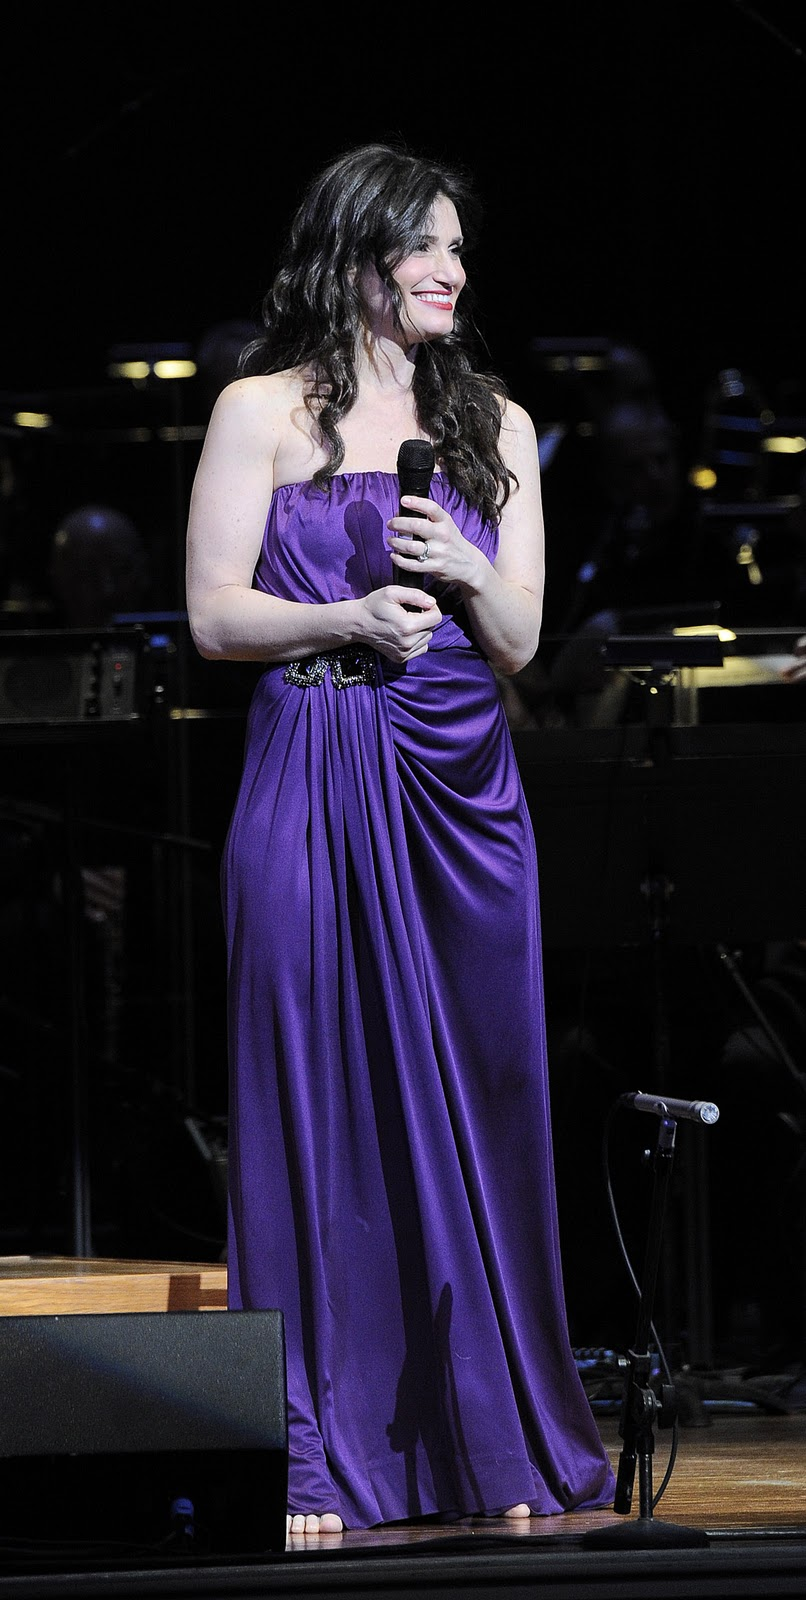 idina menzel pregnant on glee - photo #6